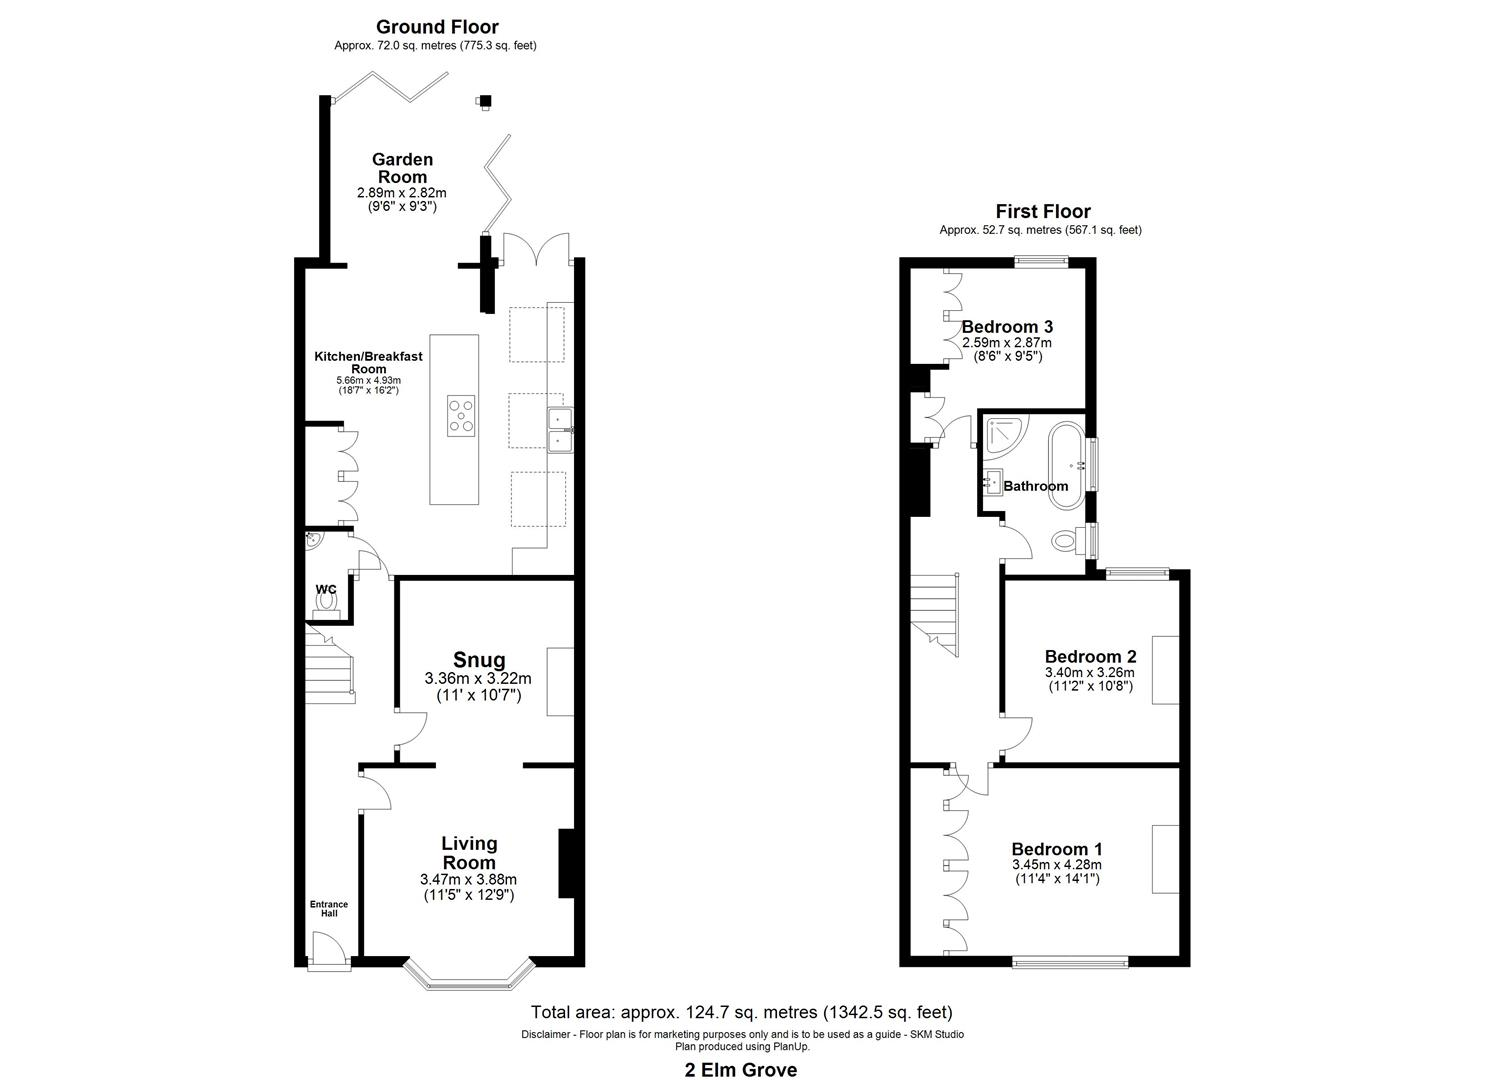 2-Elm-Grove - floor plan.jpg